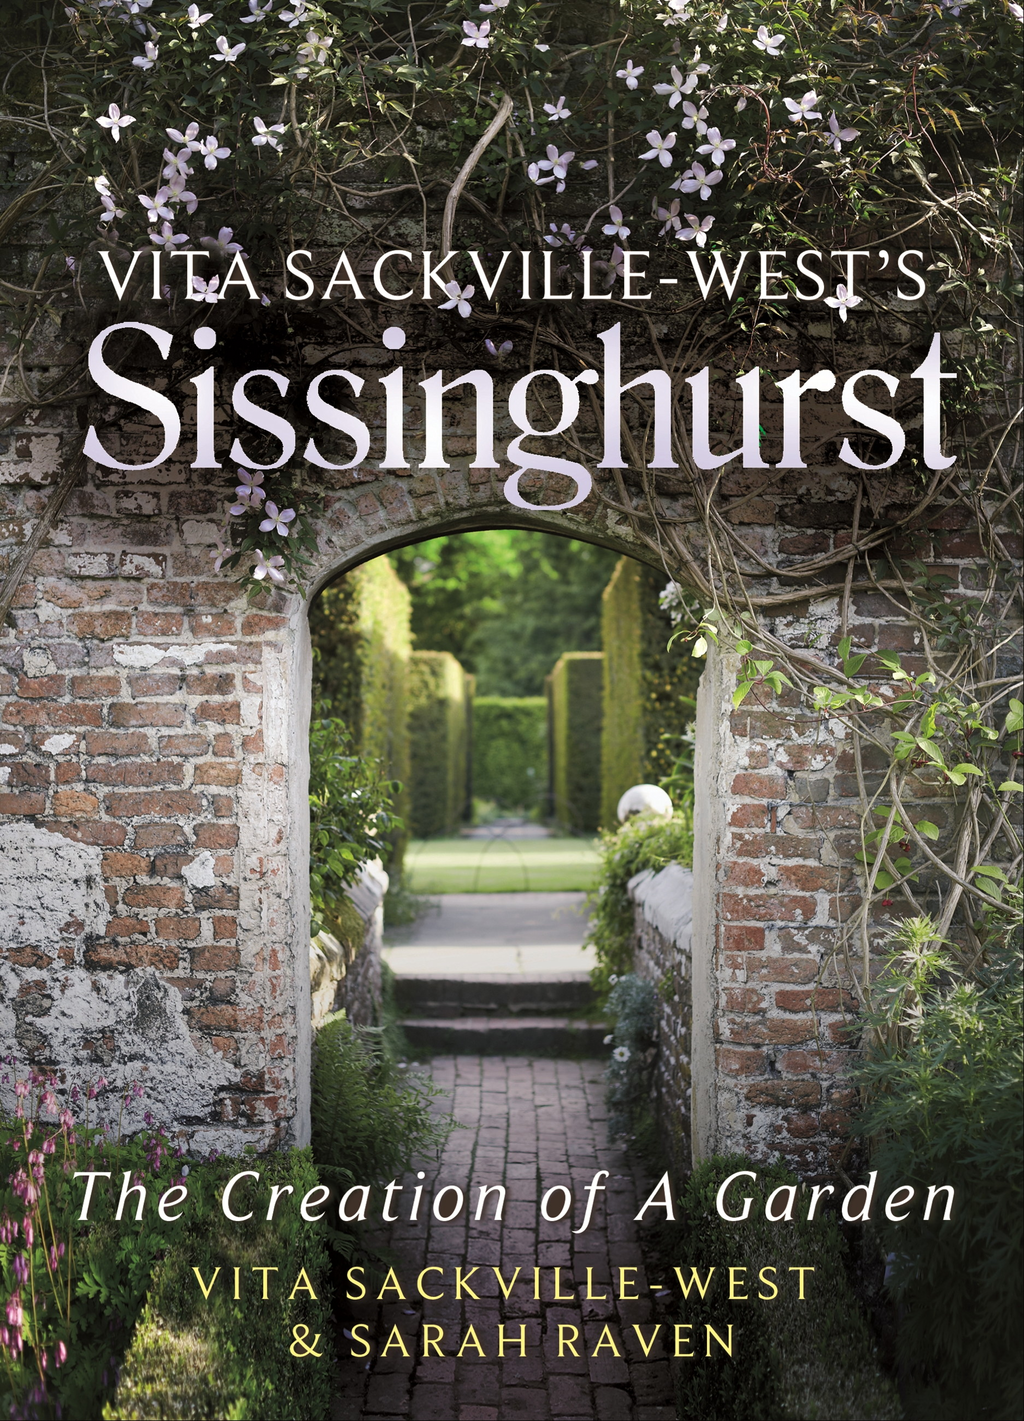 Vita Sackville-West's Sissinghurst The Creation of a Garden